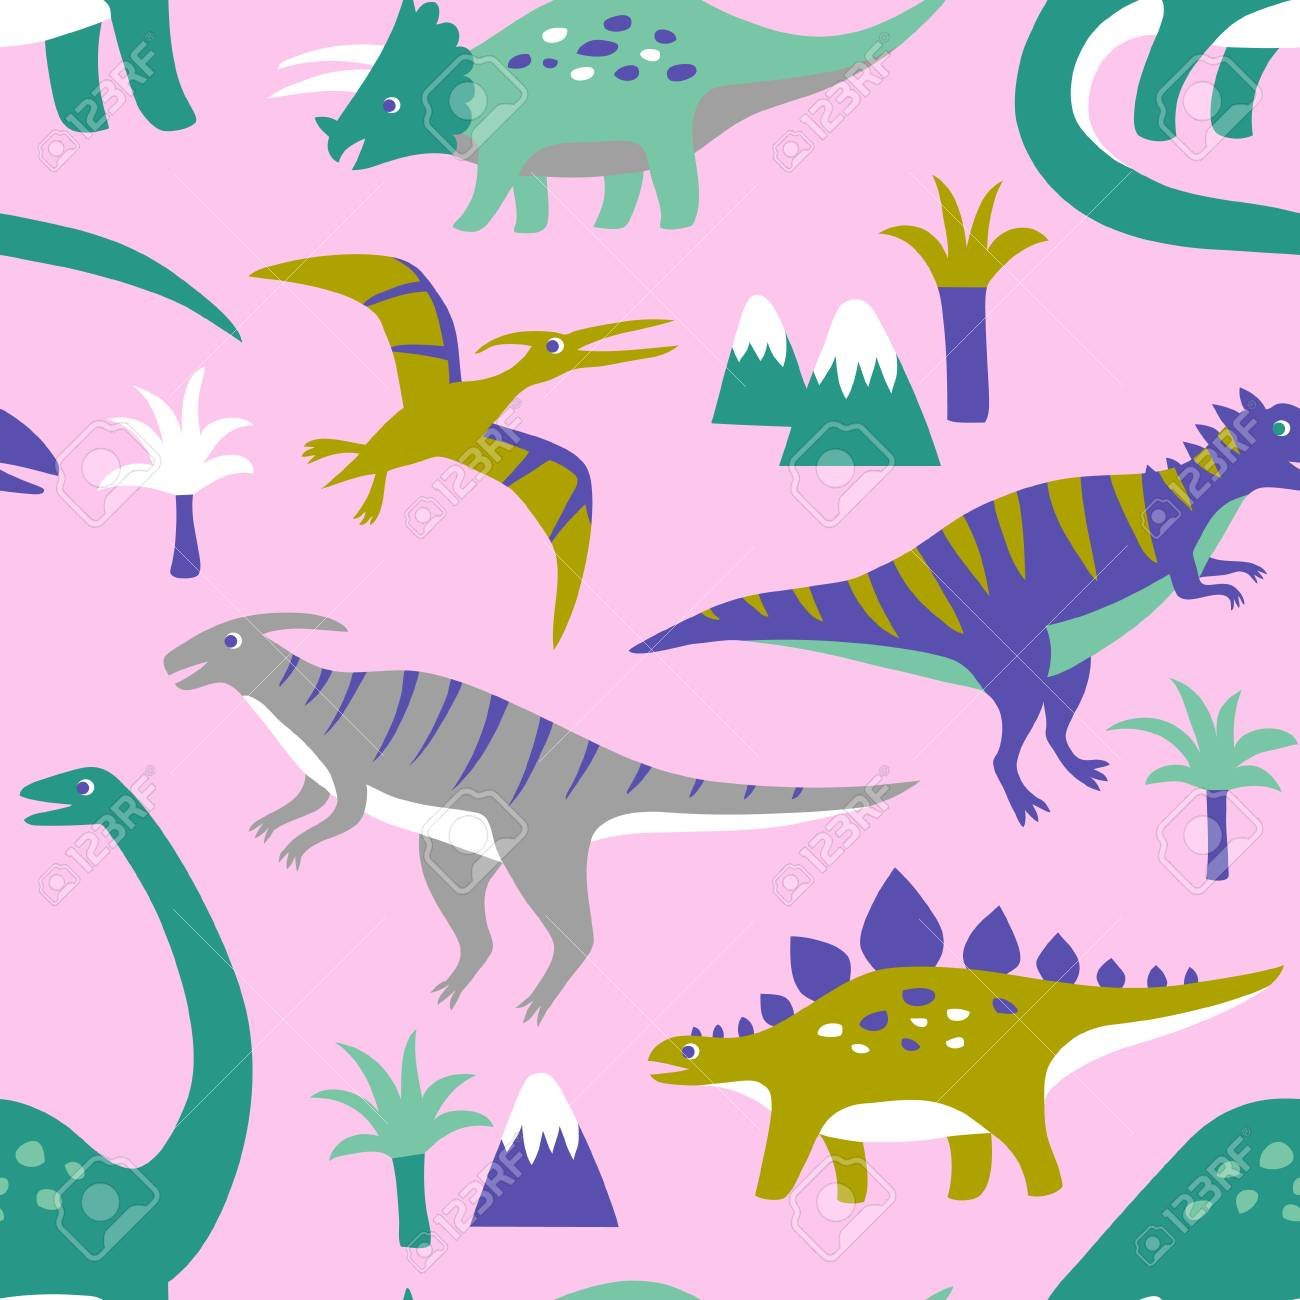 Hand Drawn Seamless Vector Pattern With Cute Dinosaurs Mountains And Palm Trees Repetitive Wallpaper